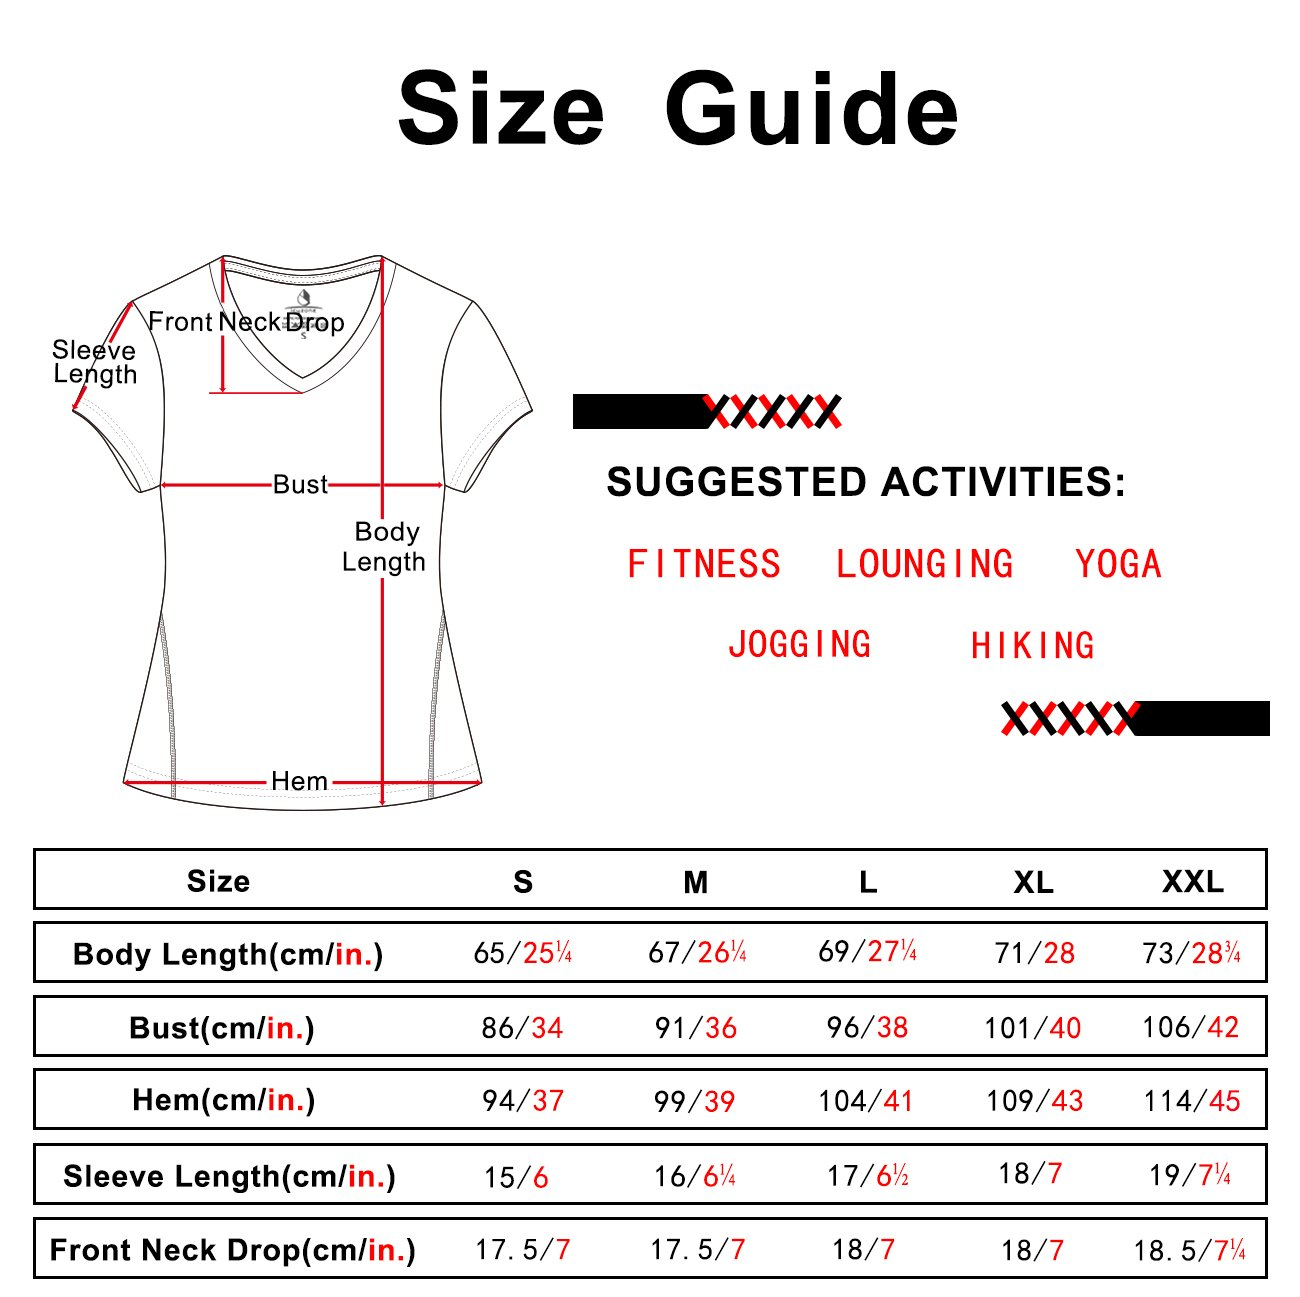 icyZone Workout Shirts Yoga Tops Activewear V-Neck T-shirts for Women Running Fitness Sports Short Sleeve Tees (L, Black Heather)